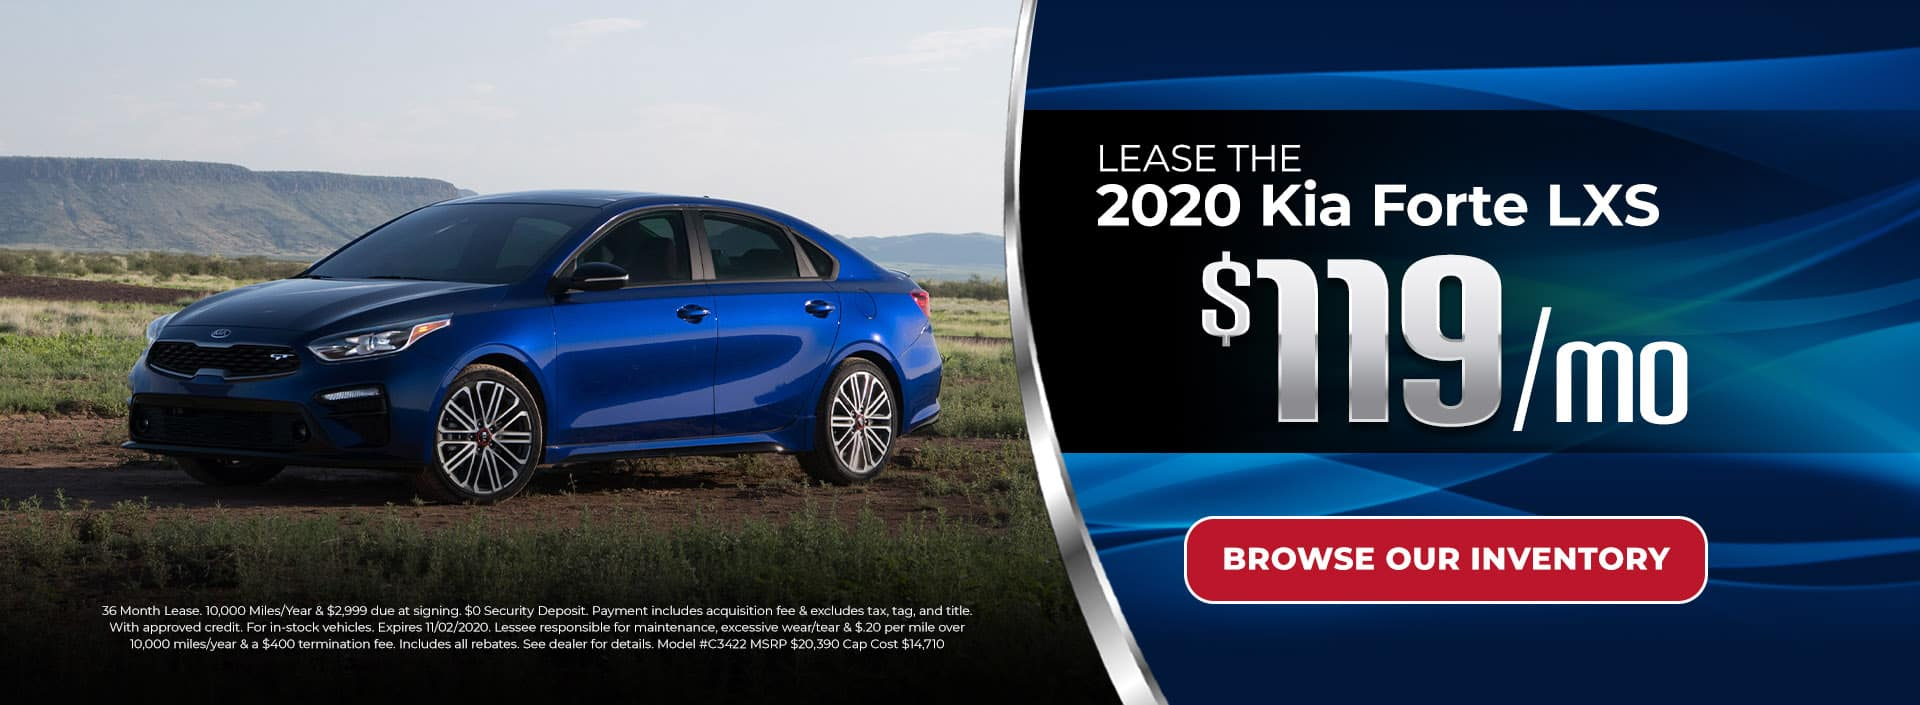 Lease 2020 Kia Forte for $119/mo